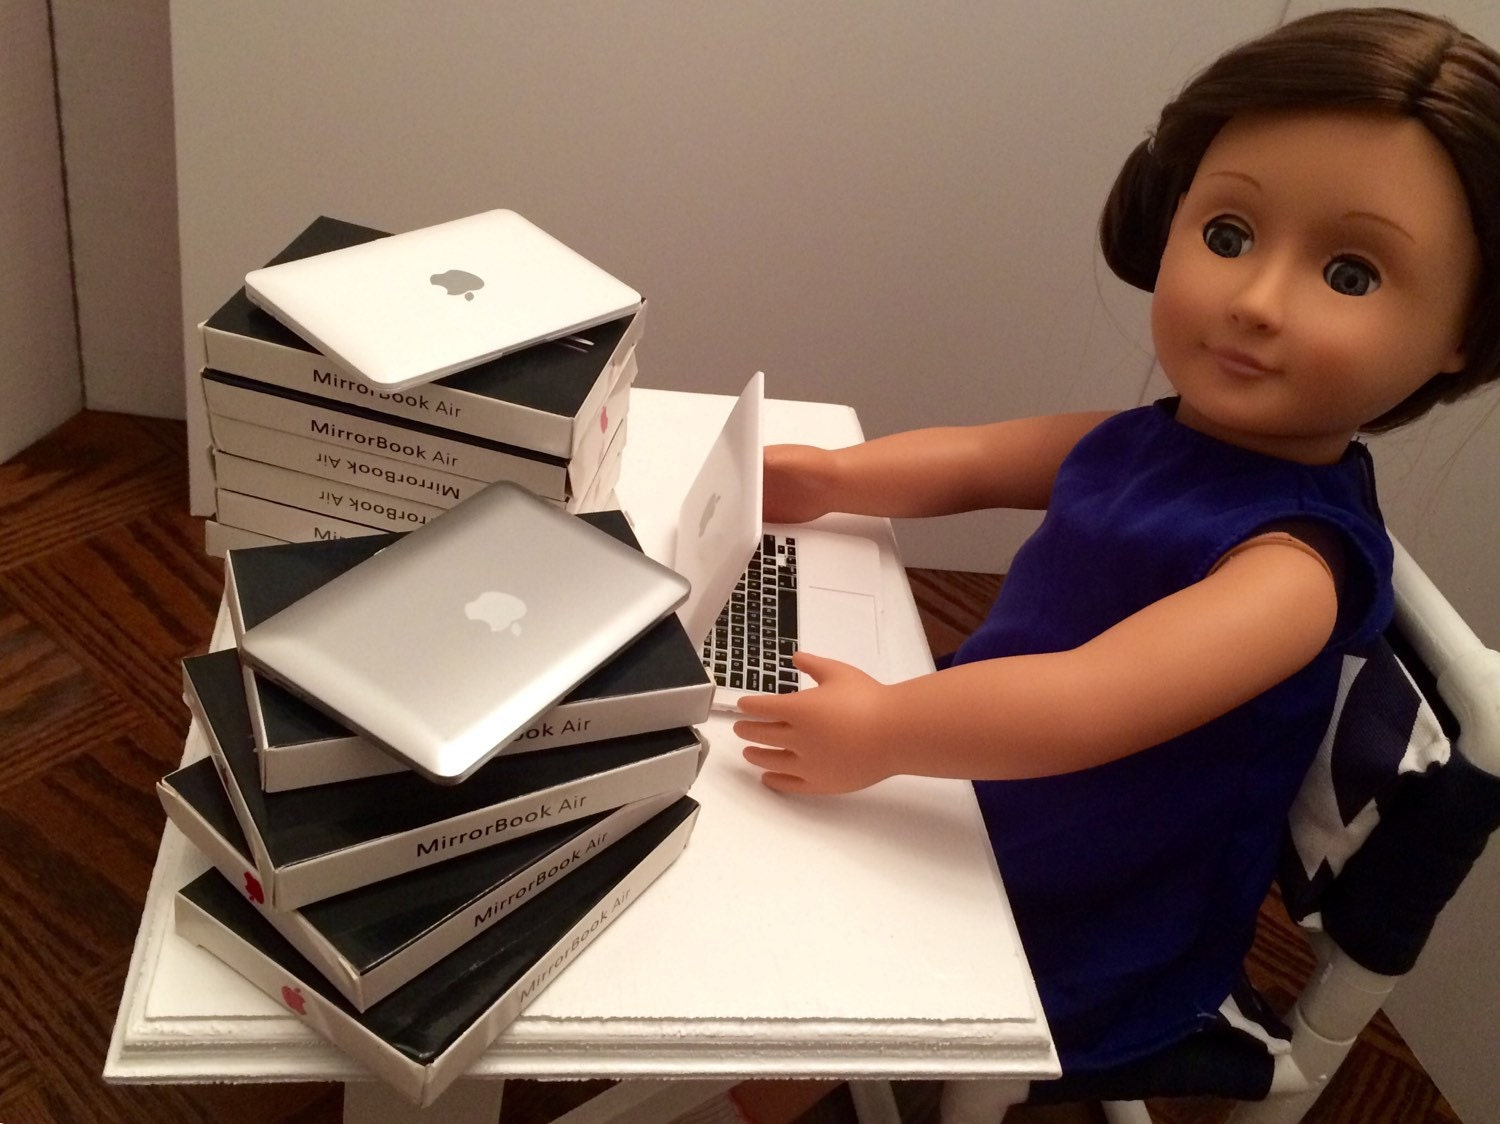 Laptop for the American Girl 18 Doll. A faux Apple